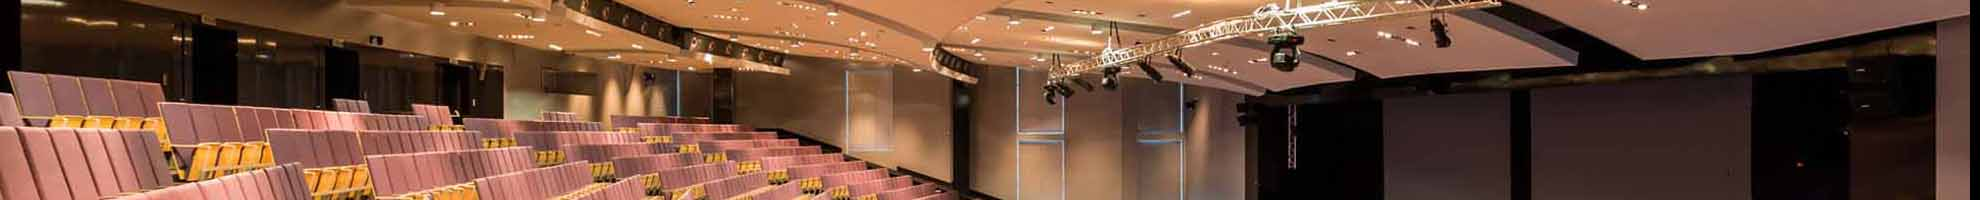 Hall - Audio & Visual Solutions for Higher Education